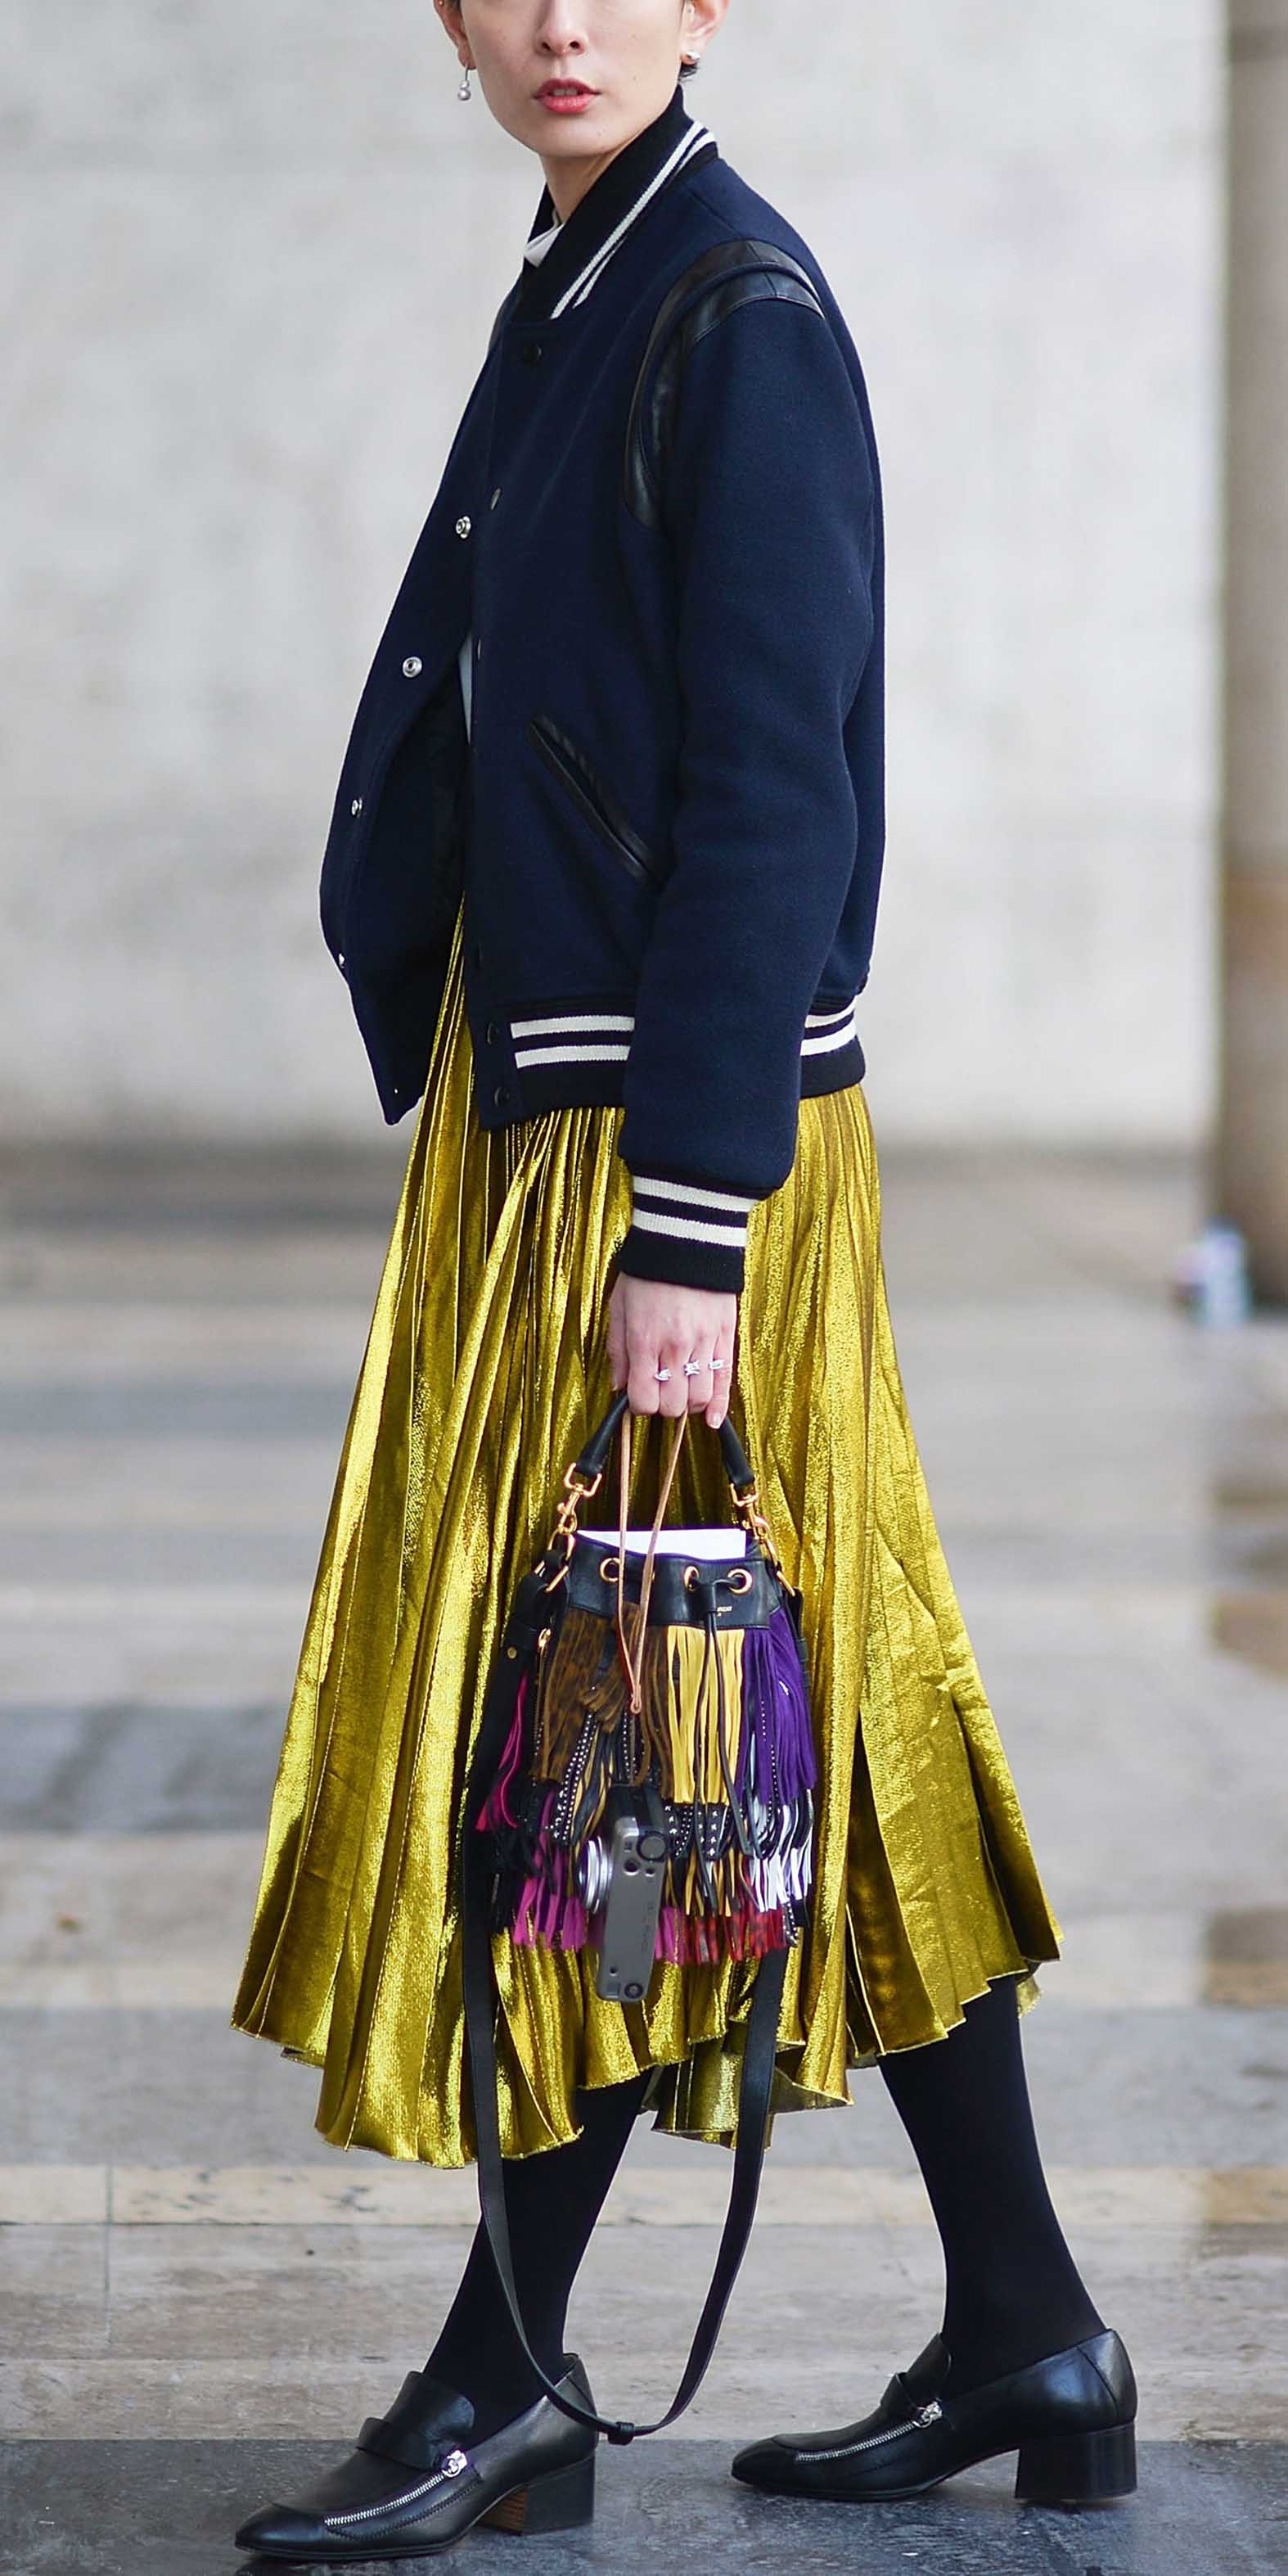 yellow-midi-skirt-pleated-metallic-blue-navy-jacket-bomber-black-tights-black-shoe-loafers-fall-winter-lunch.jpg